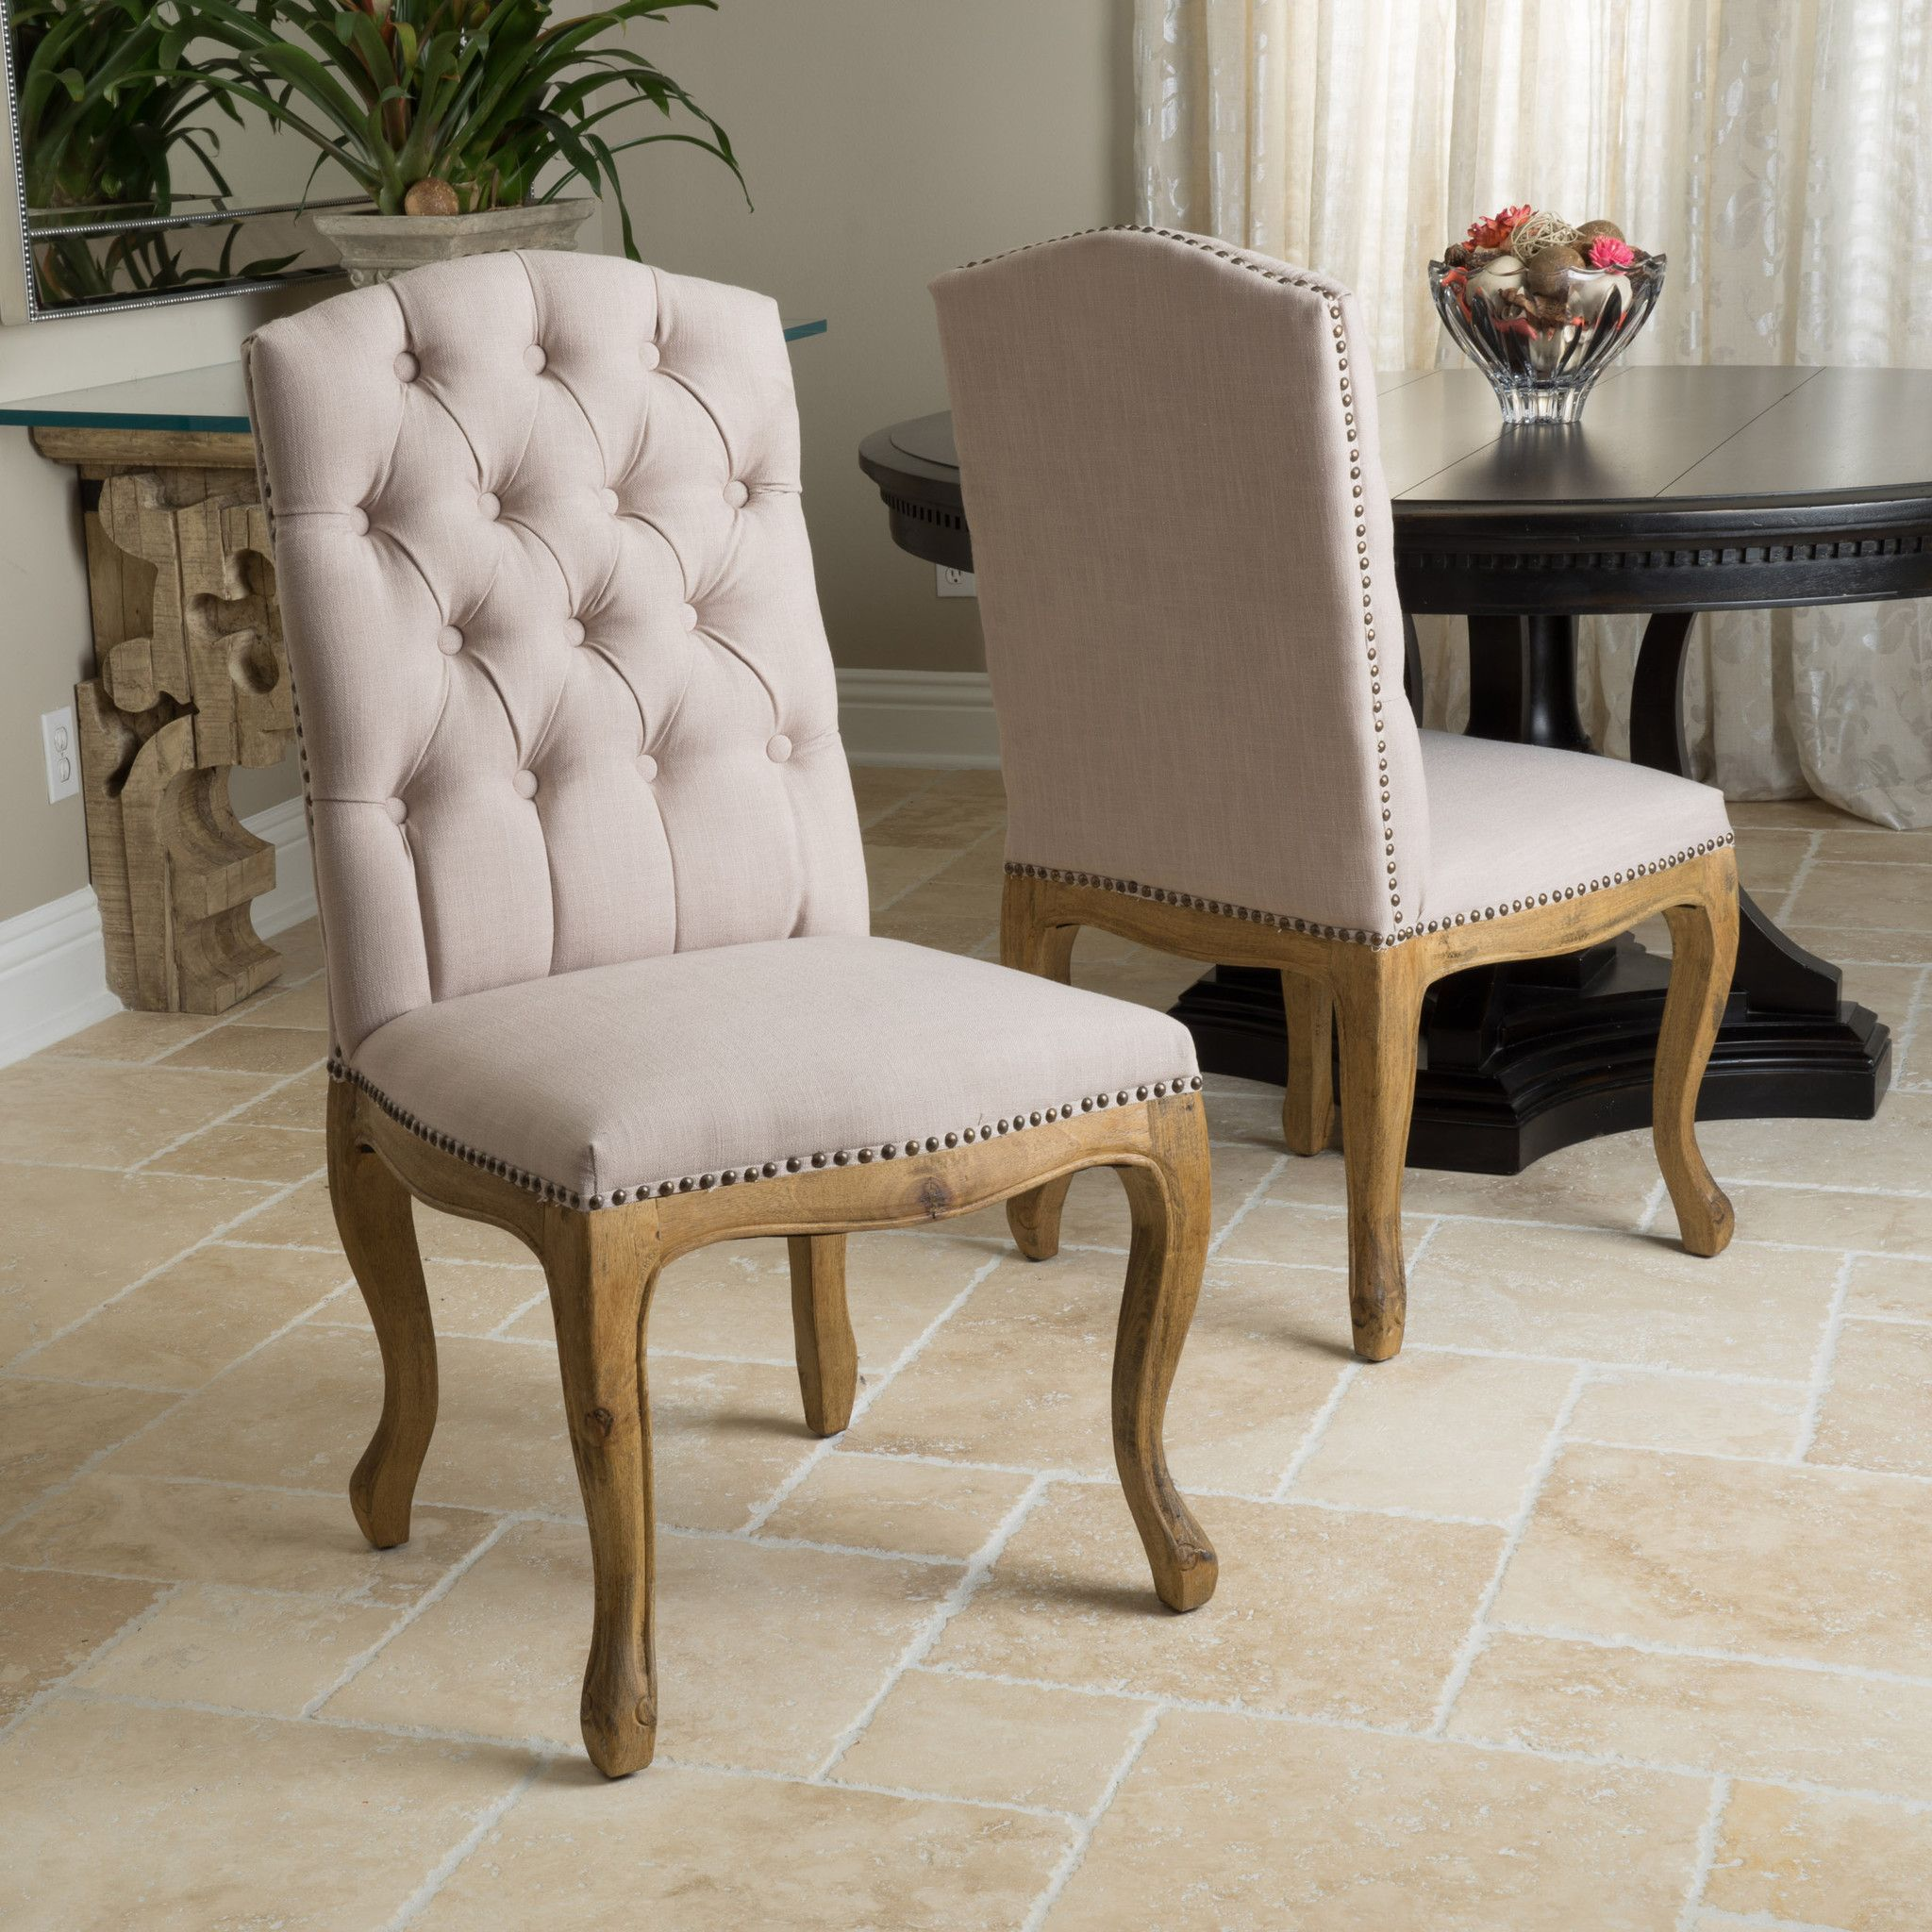 Jolie Tan Linen Weathered Dining Chair Set Set Of 2  Products Interesting Material To Cover Dining Room Chairs Design Inspiration